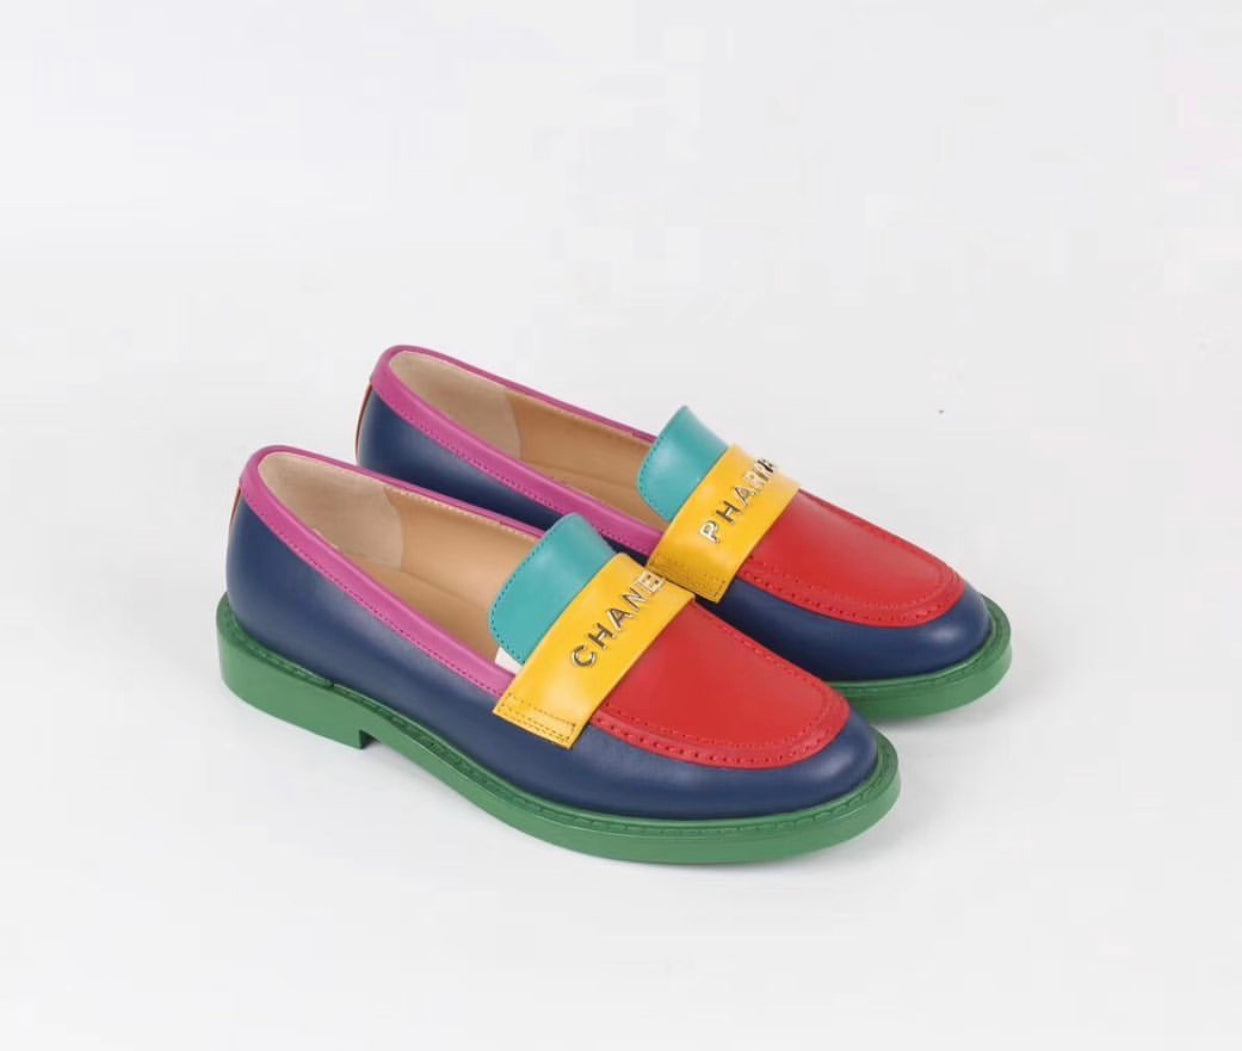 chanel x pharrell loafers